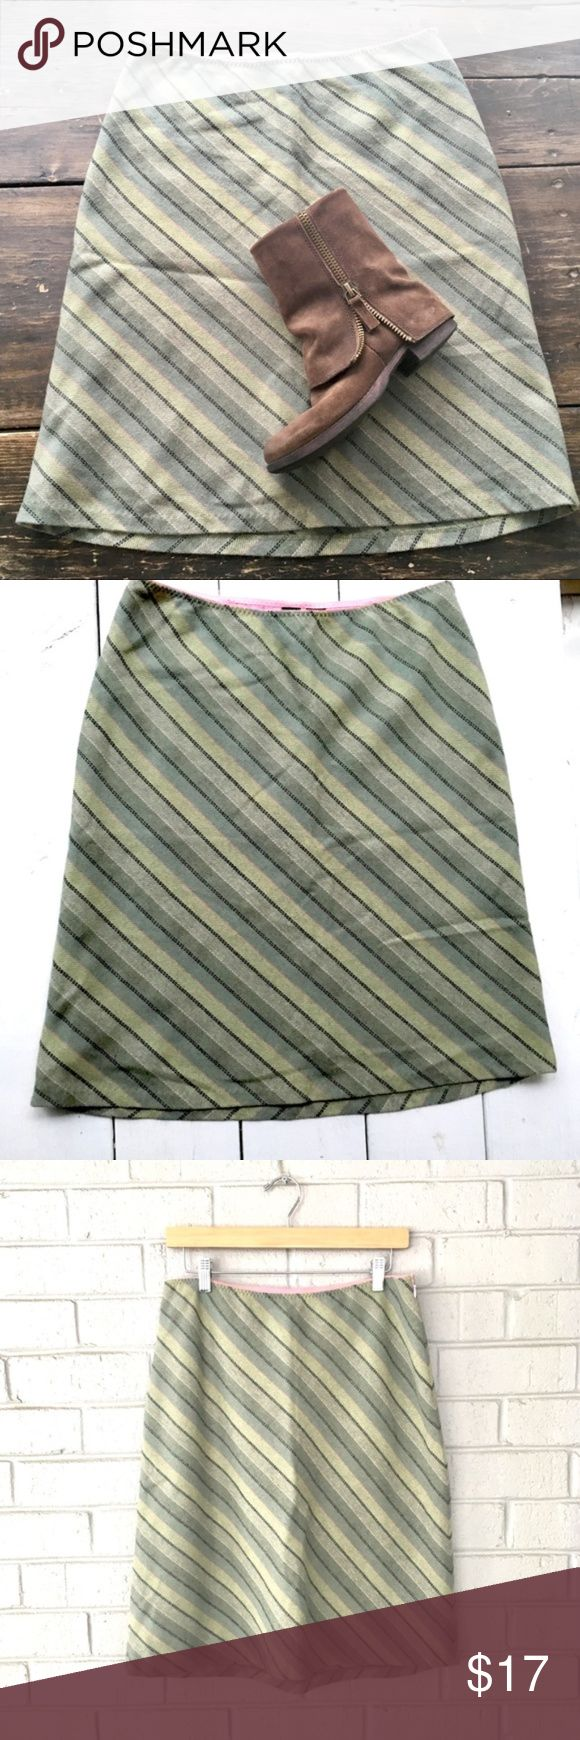 Olive Green Gap Skirt Size 8 Gently used. In great cnodition. No stains, rips or tears. Gap Wool blend skirt. 4shades of olive green stripes diagonal with cream, black and pink lines. Very cool skirt. Size 8. True to size. Fully lined with pink liner. Very cute and hobo skirt. Let me know if you need measurements. GAP Skirts Midi